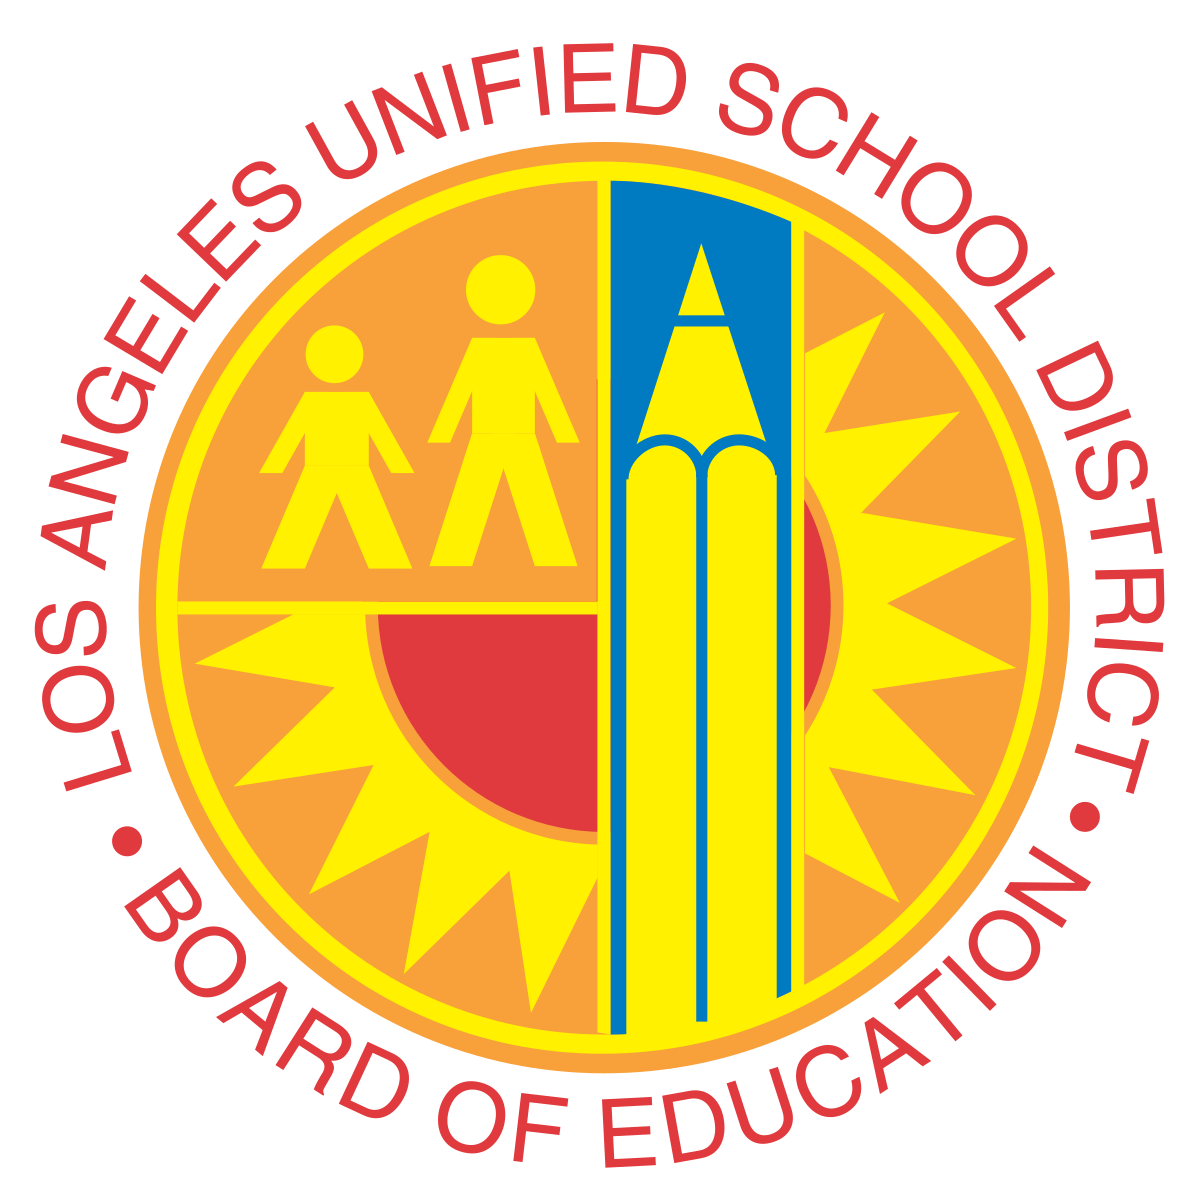 Logo of Los Angeles Unified School District